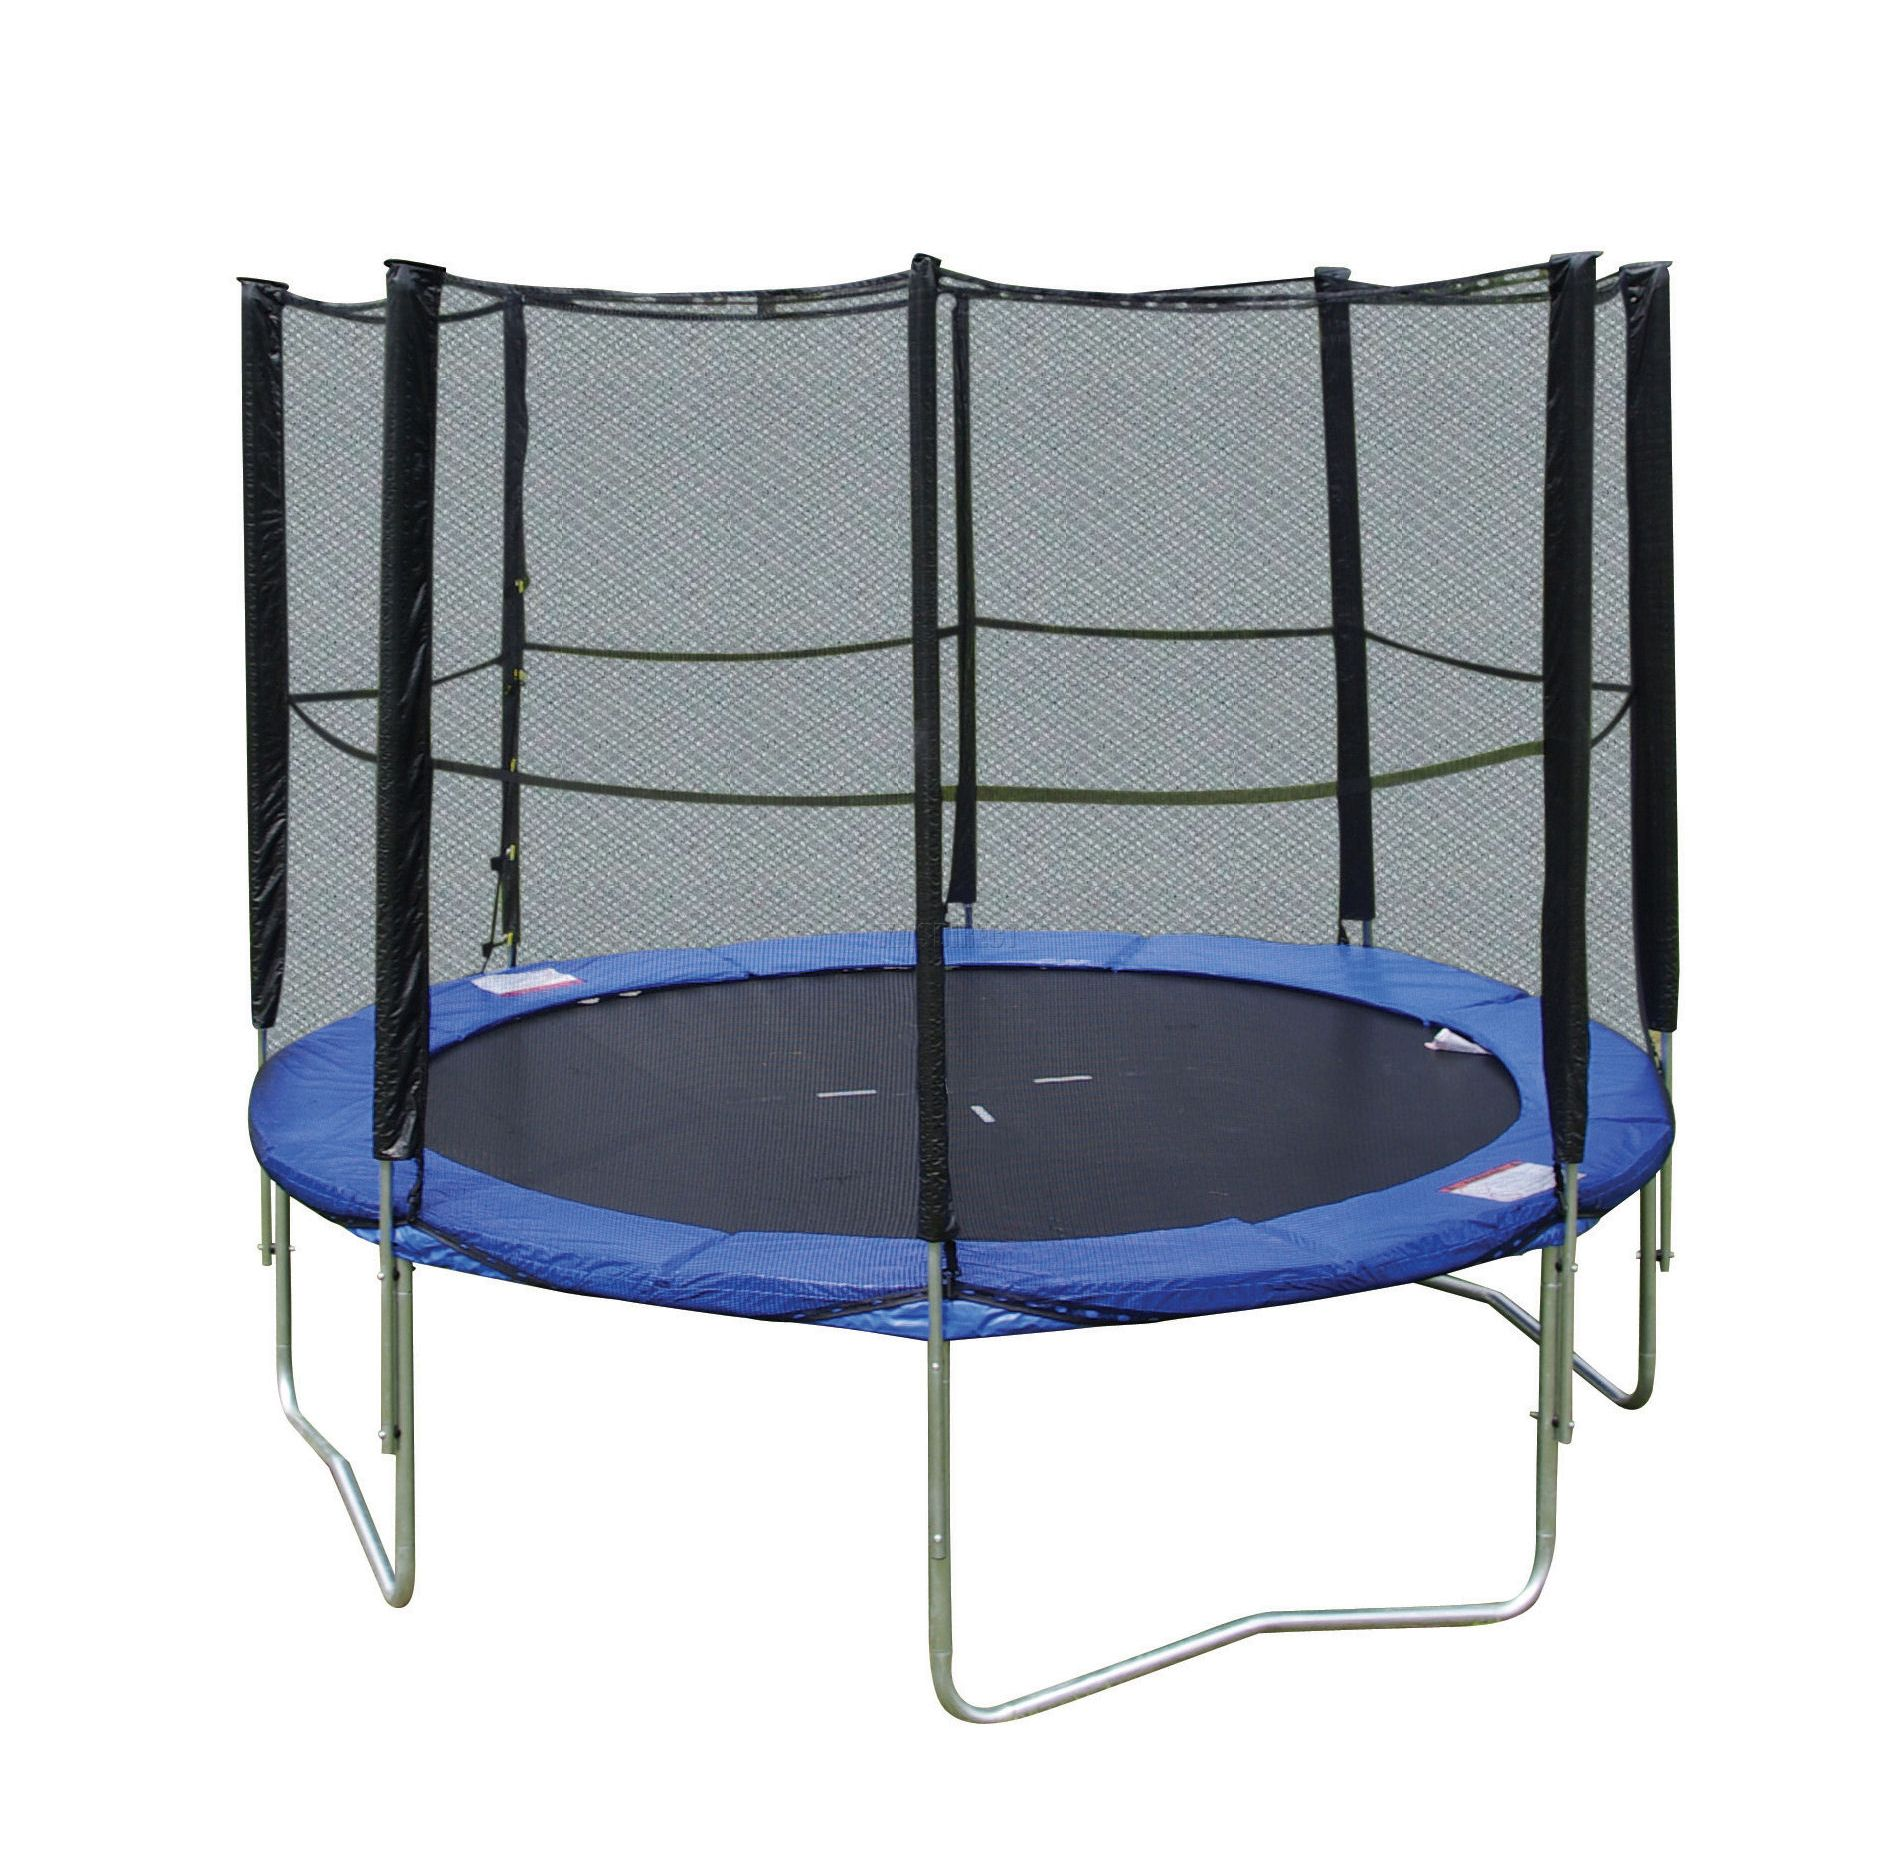 10 12 14 15 Trampoline Replacement Pad Pading Safety Net: Have One To Sell? Sell It Yourself